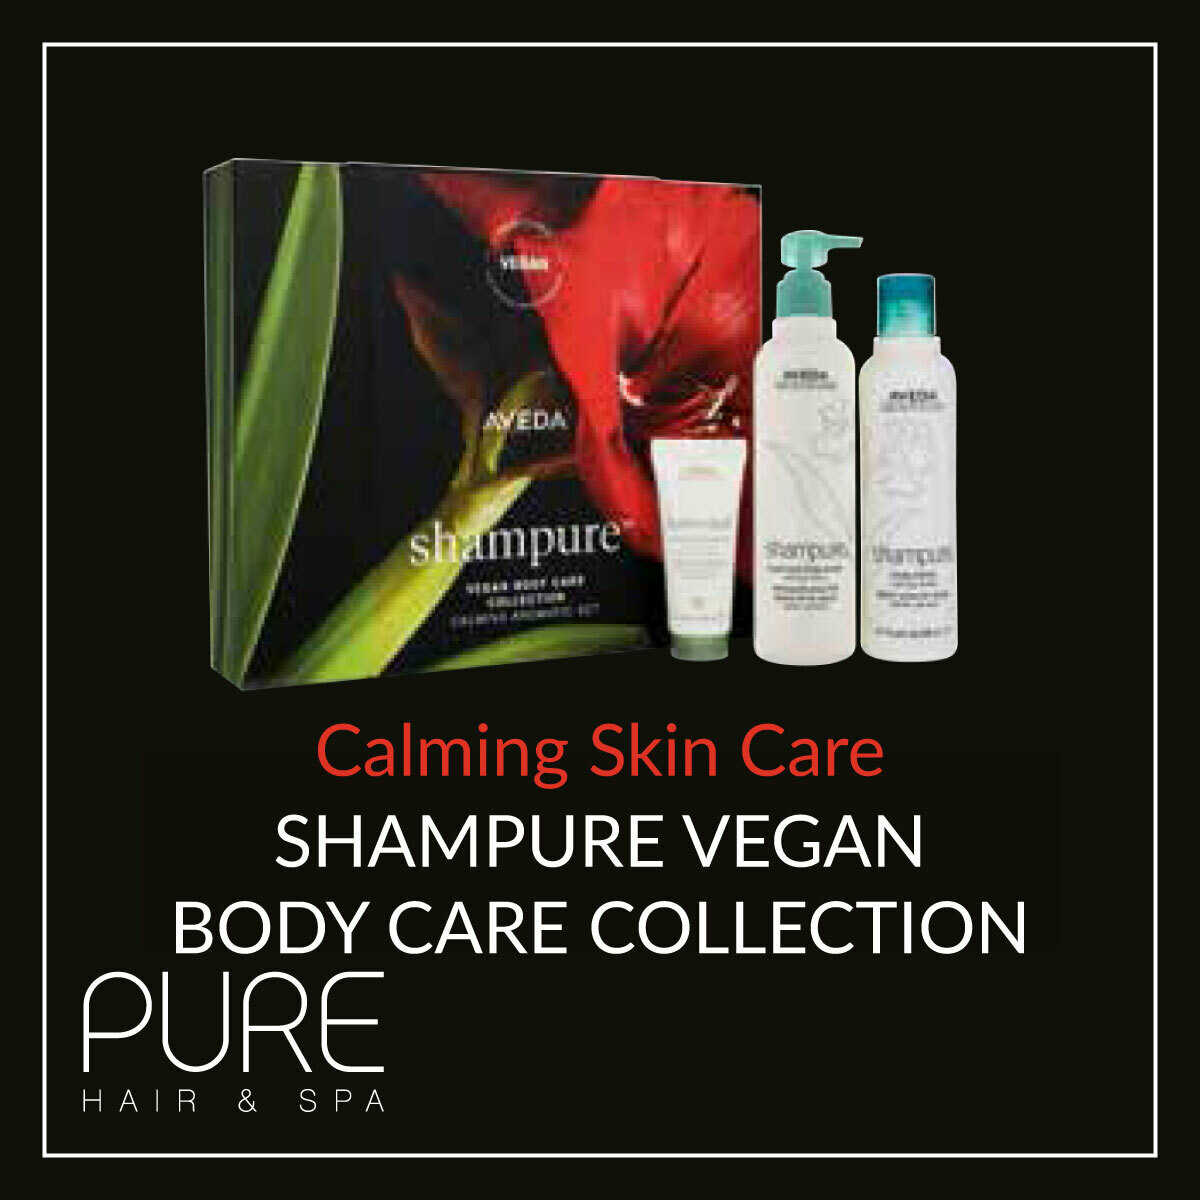 Aveda Shampure Body Care Gift Set.